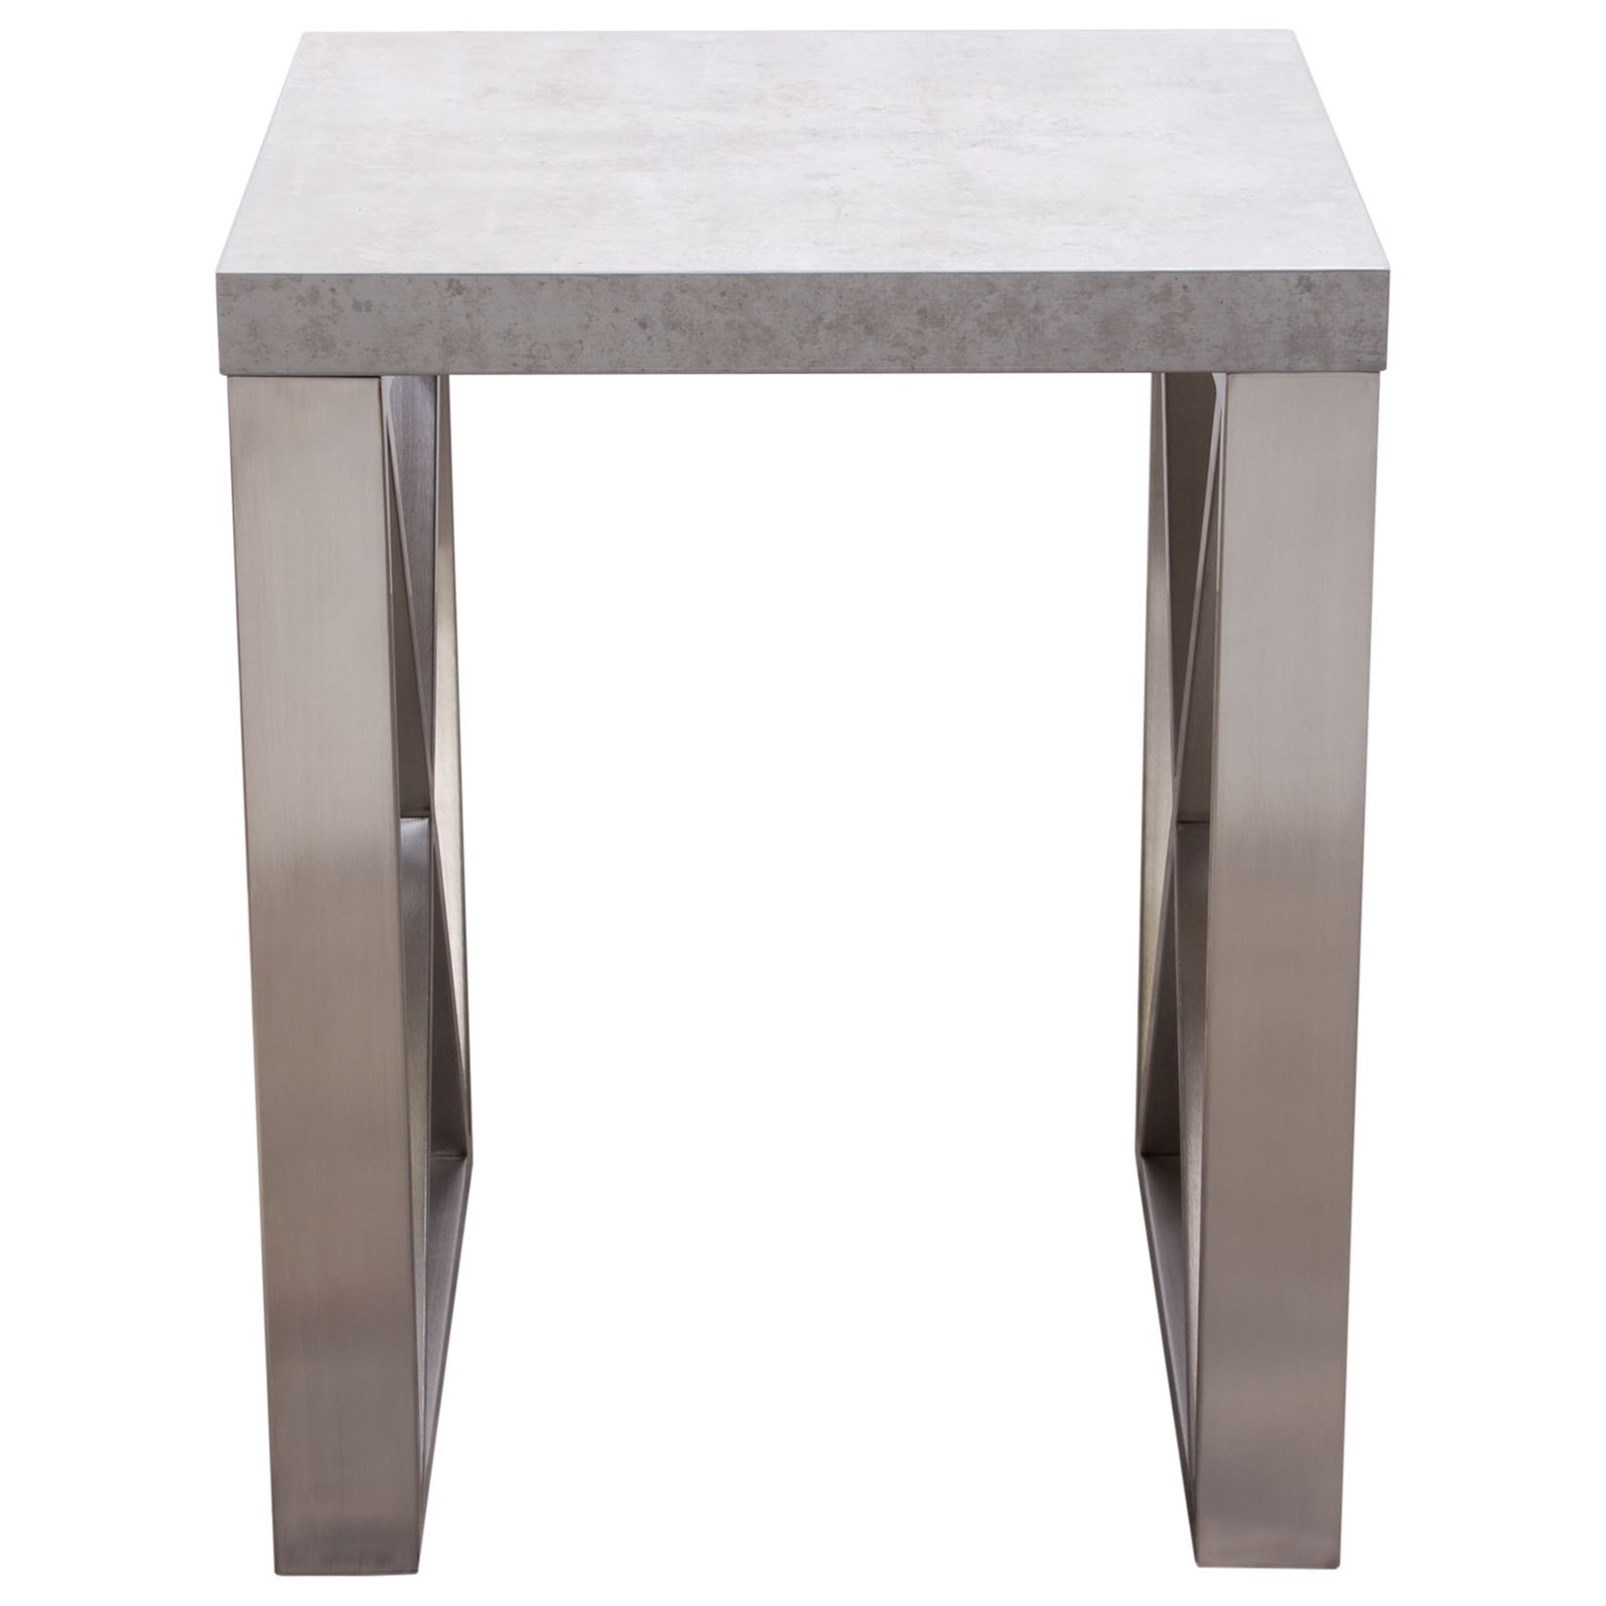 Diamond Sofa Carrera Tables End Table Red Knot End Tables